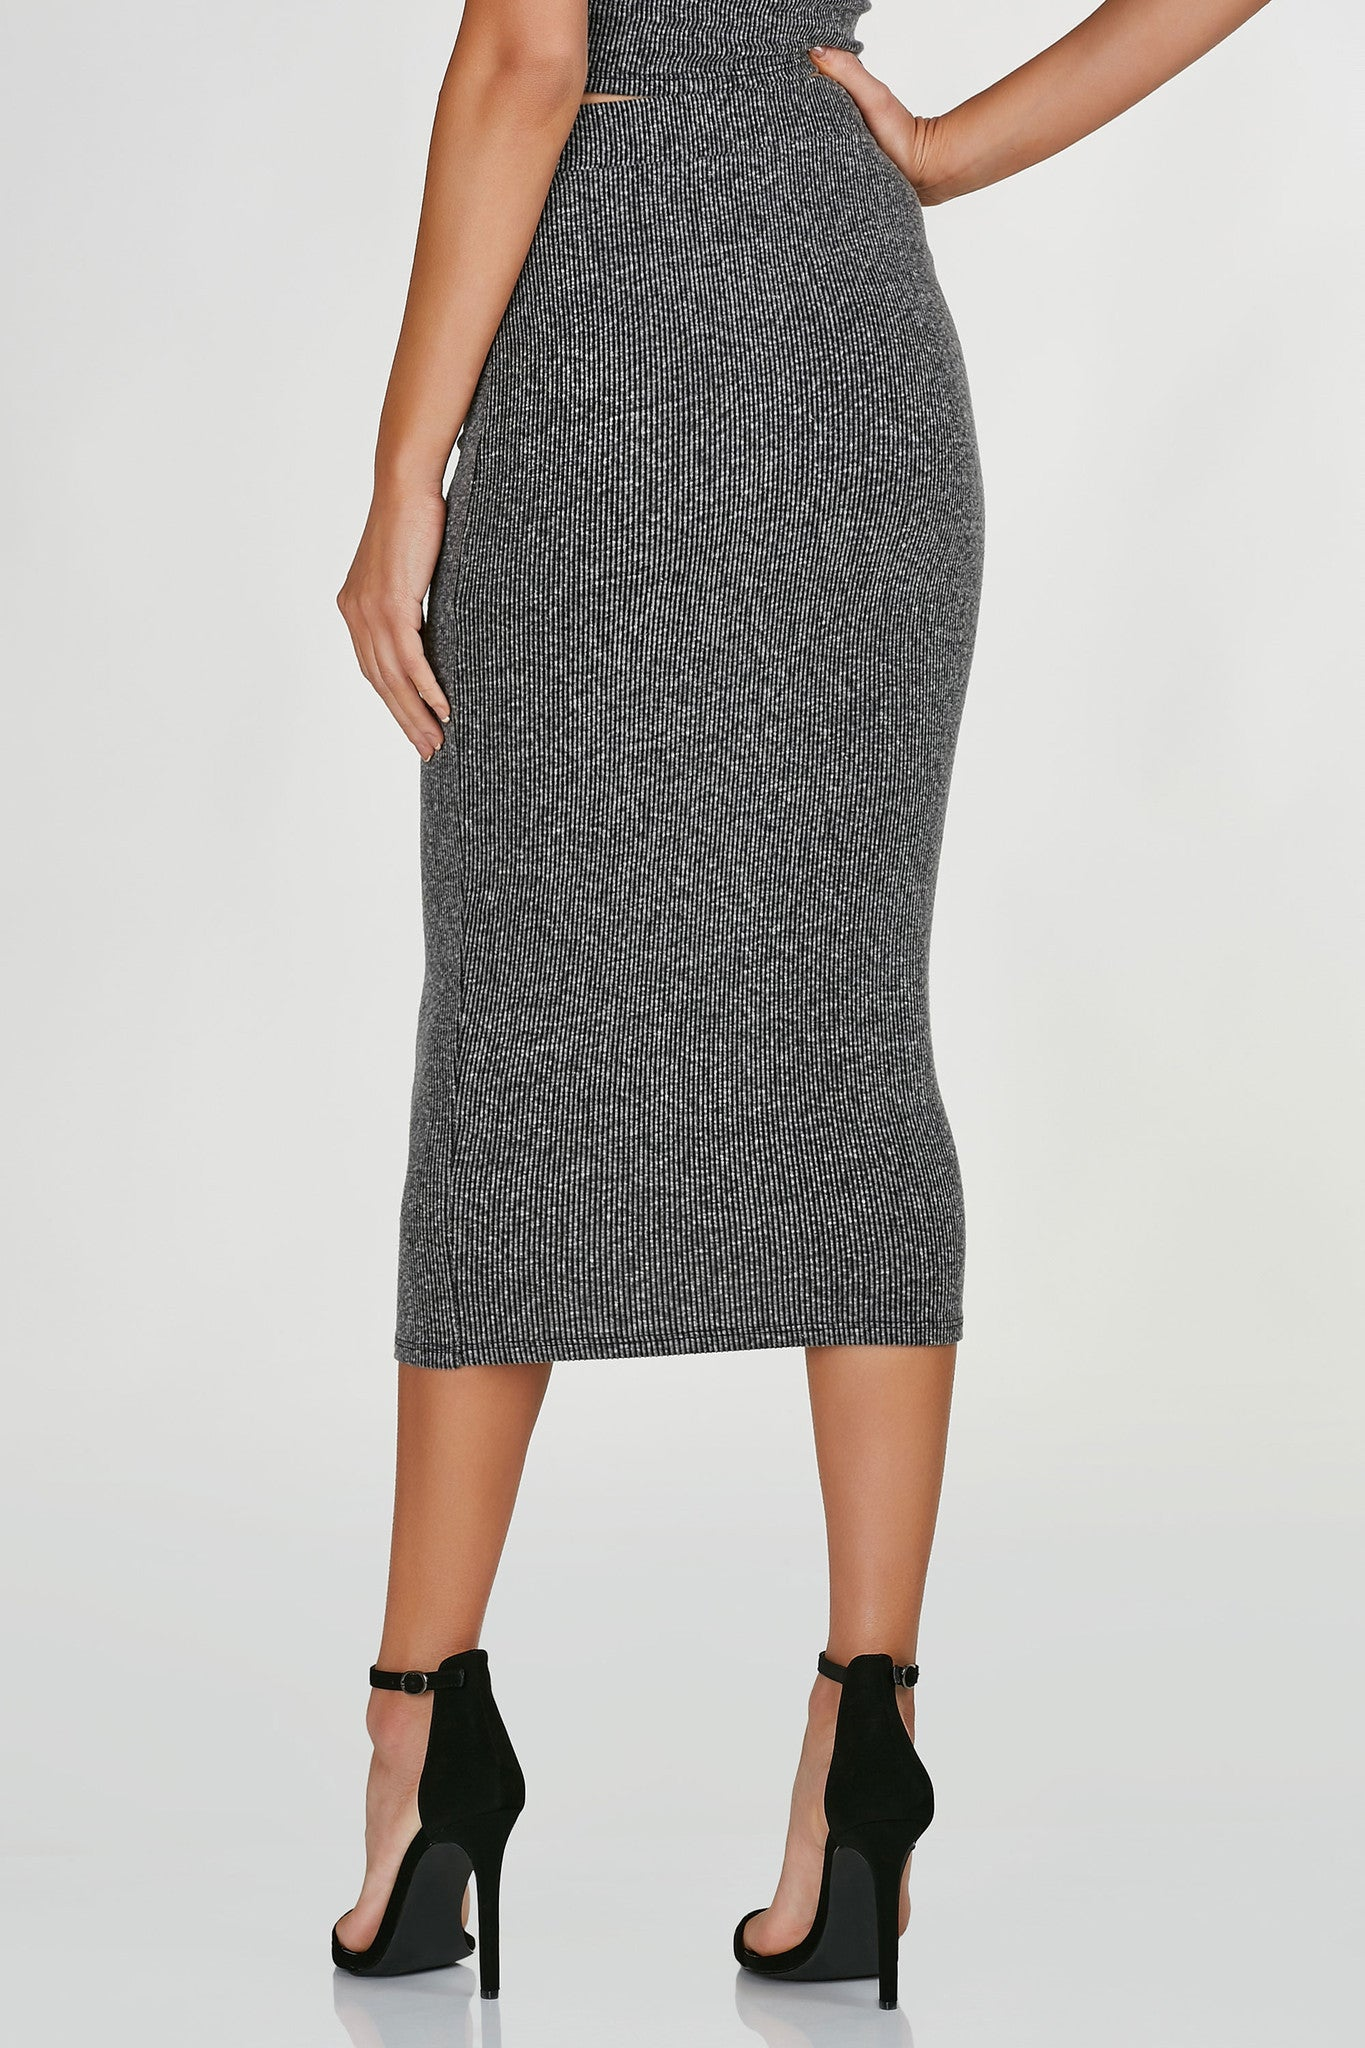 High rise midi skirt, ribbed throughout with straigh hem all around. Comes in a set with matching top sold separately.